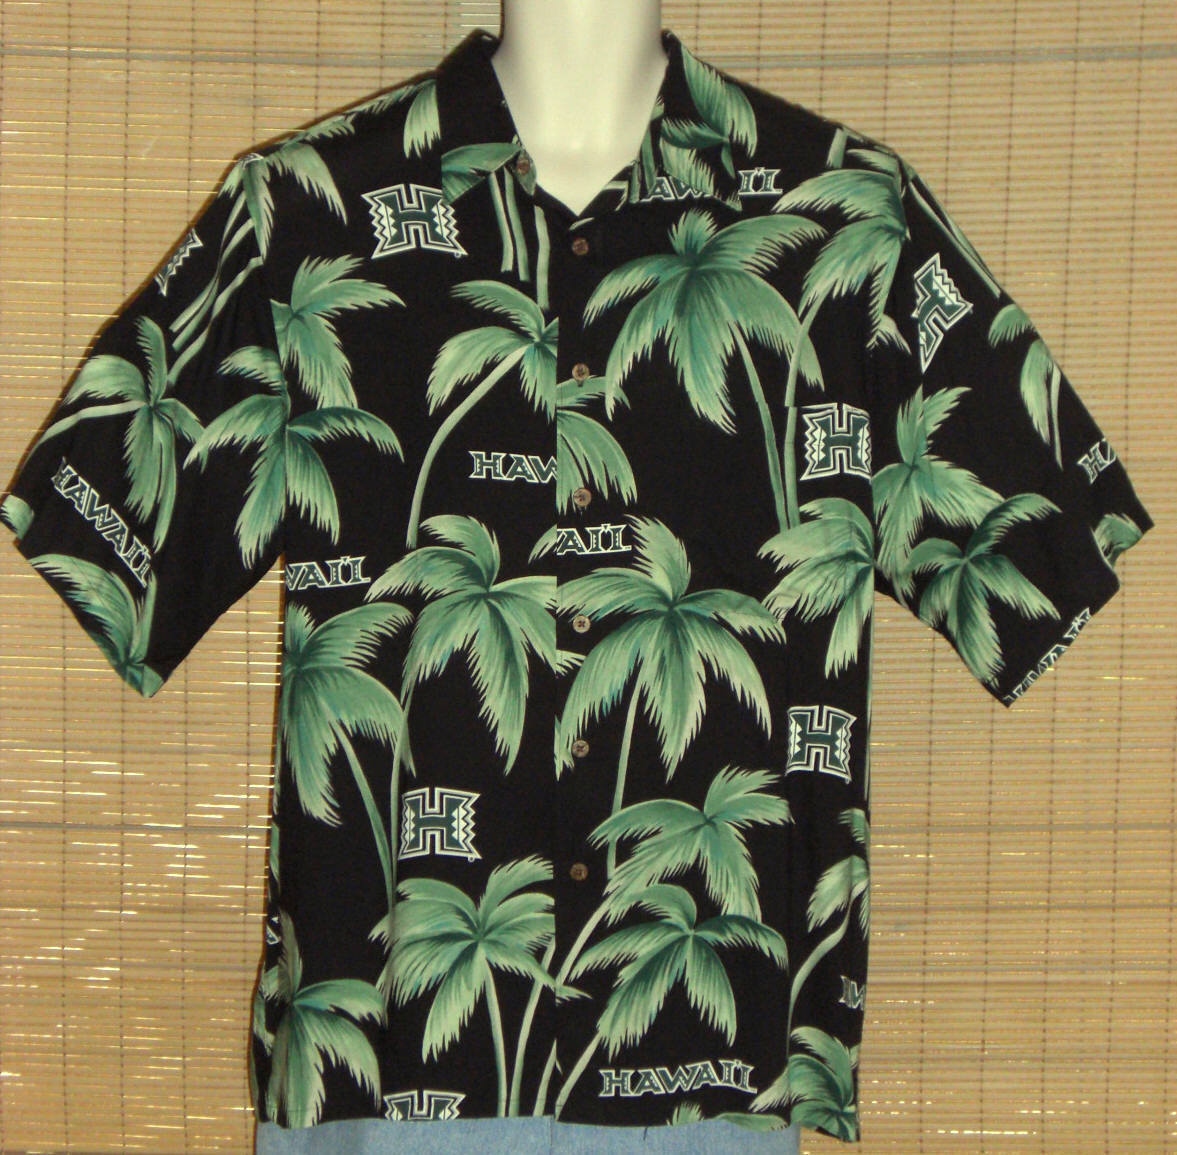 Primary image for Reyn Spooner Sports Hawaiian Shirt Black Green Palm Trees Hawaii Size Large